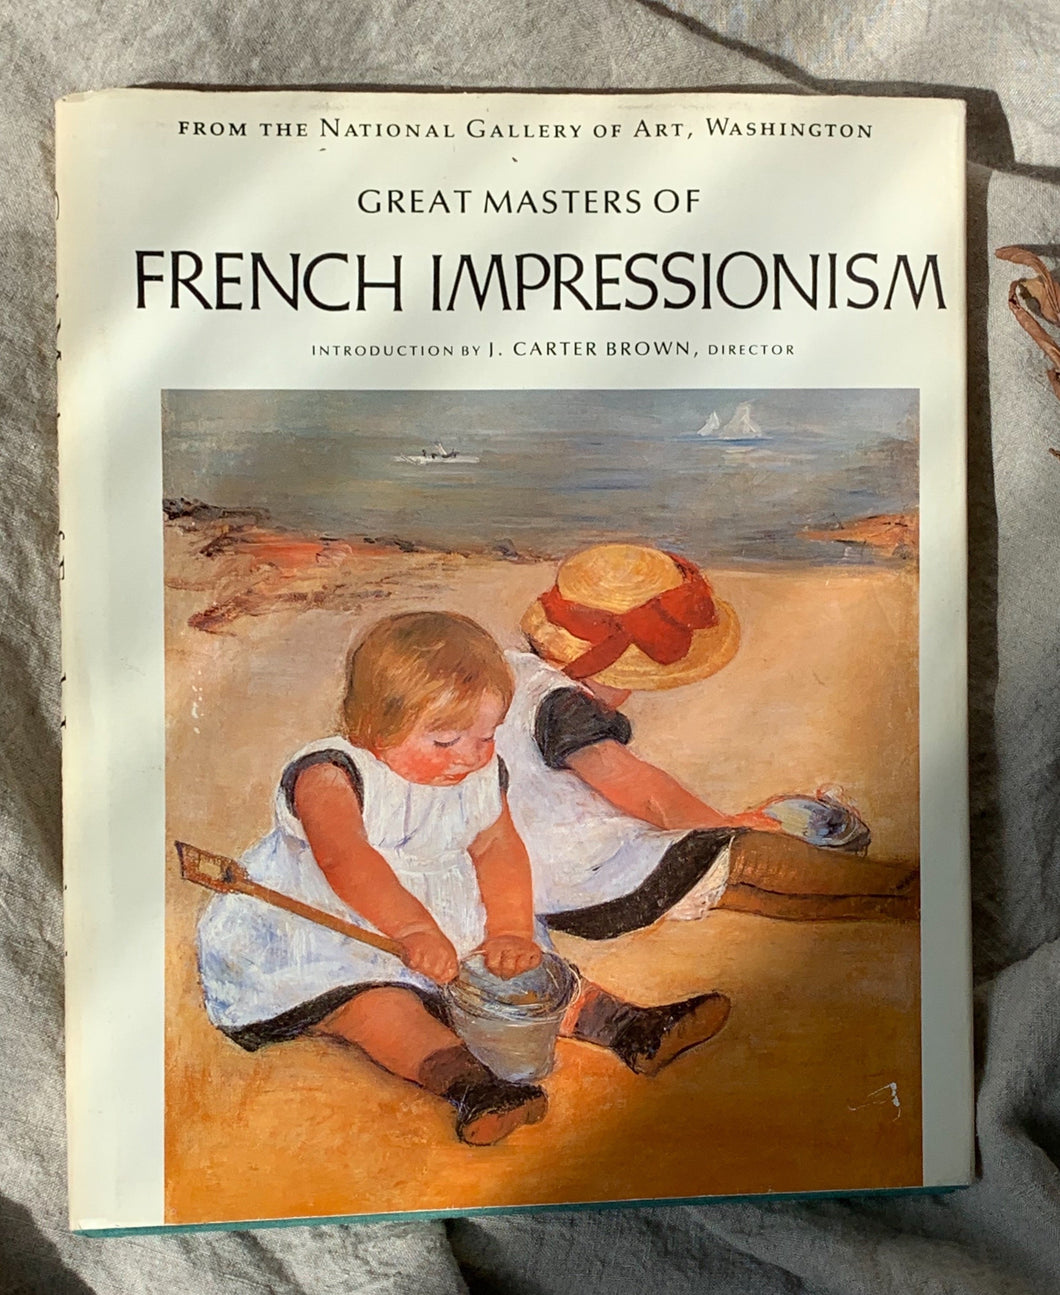 Vintage French Impressionism Book